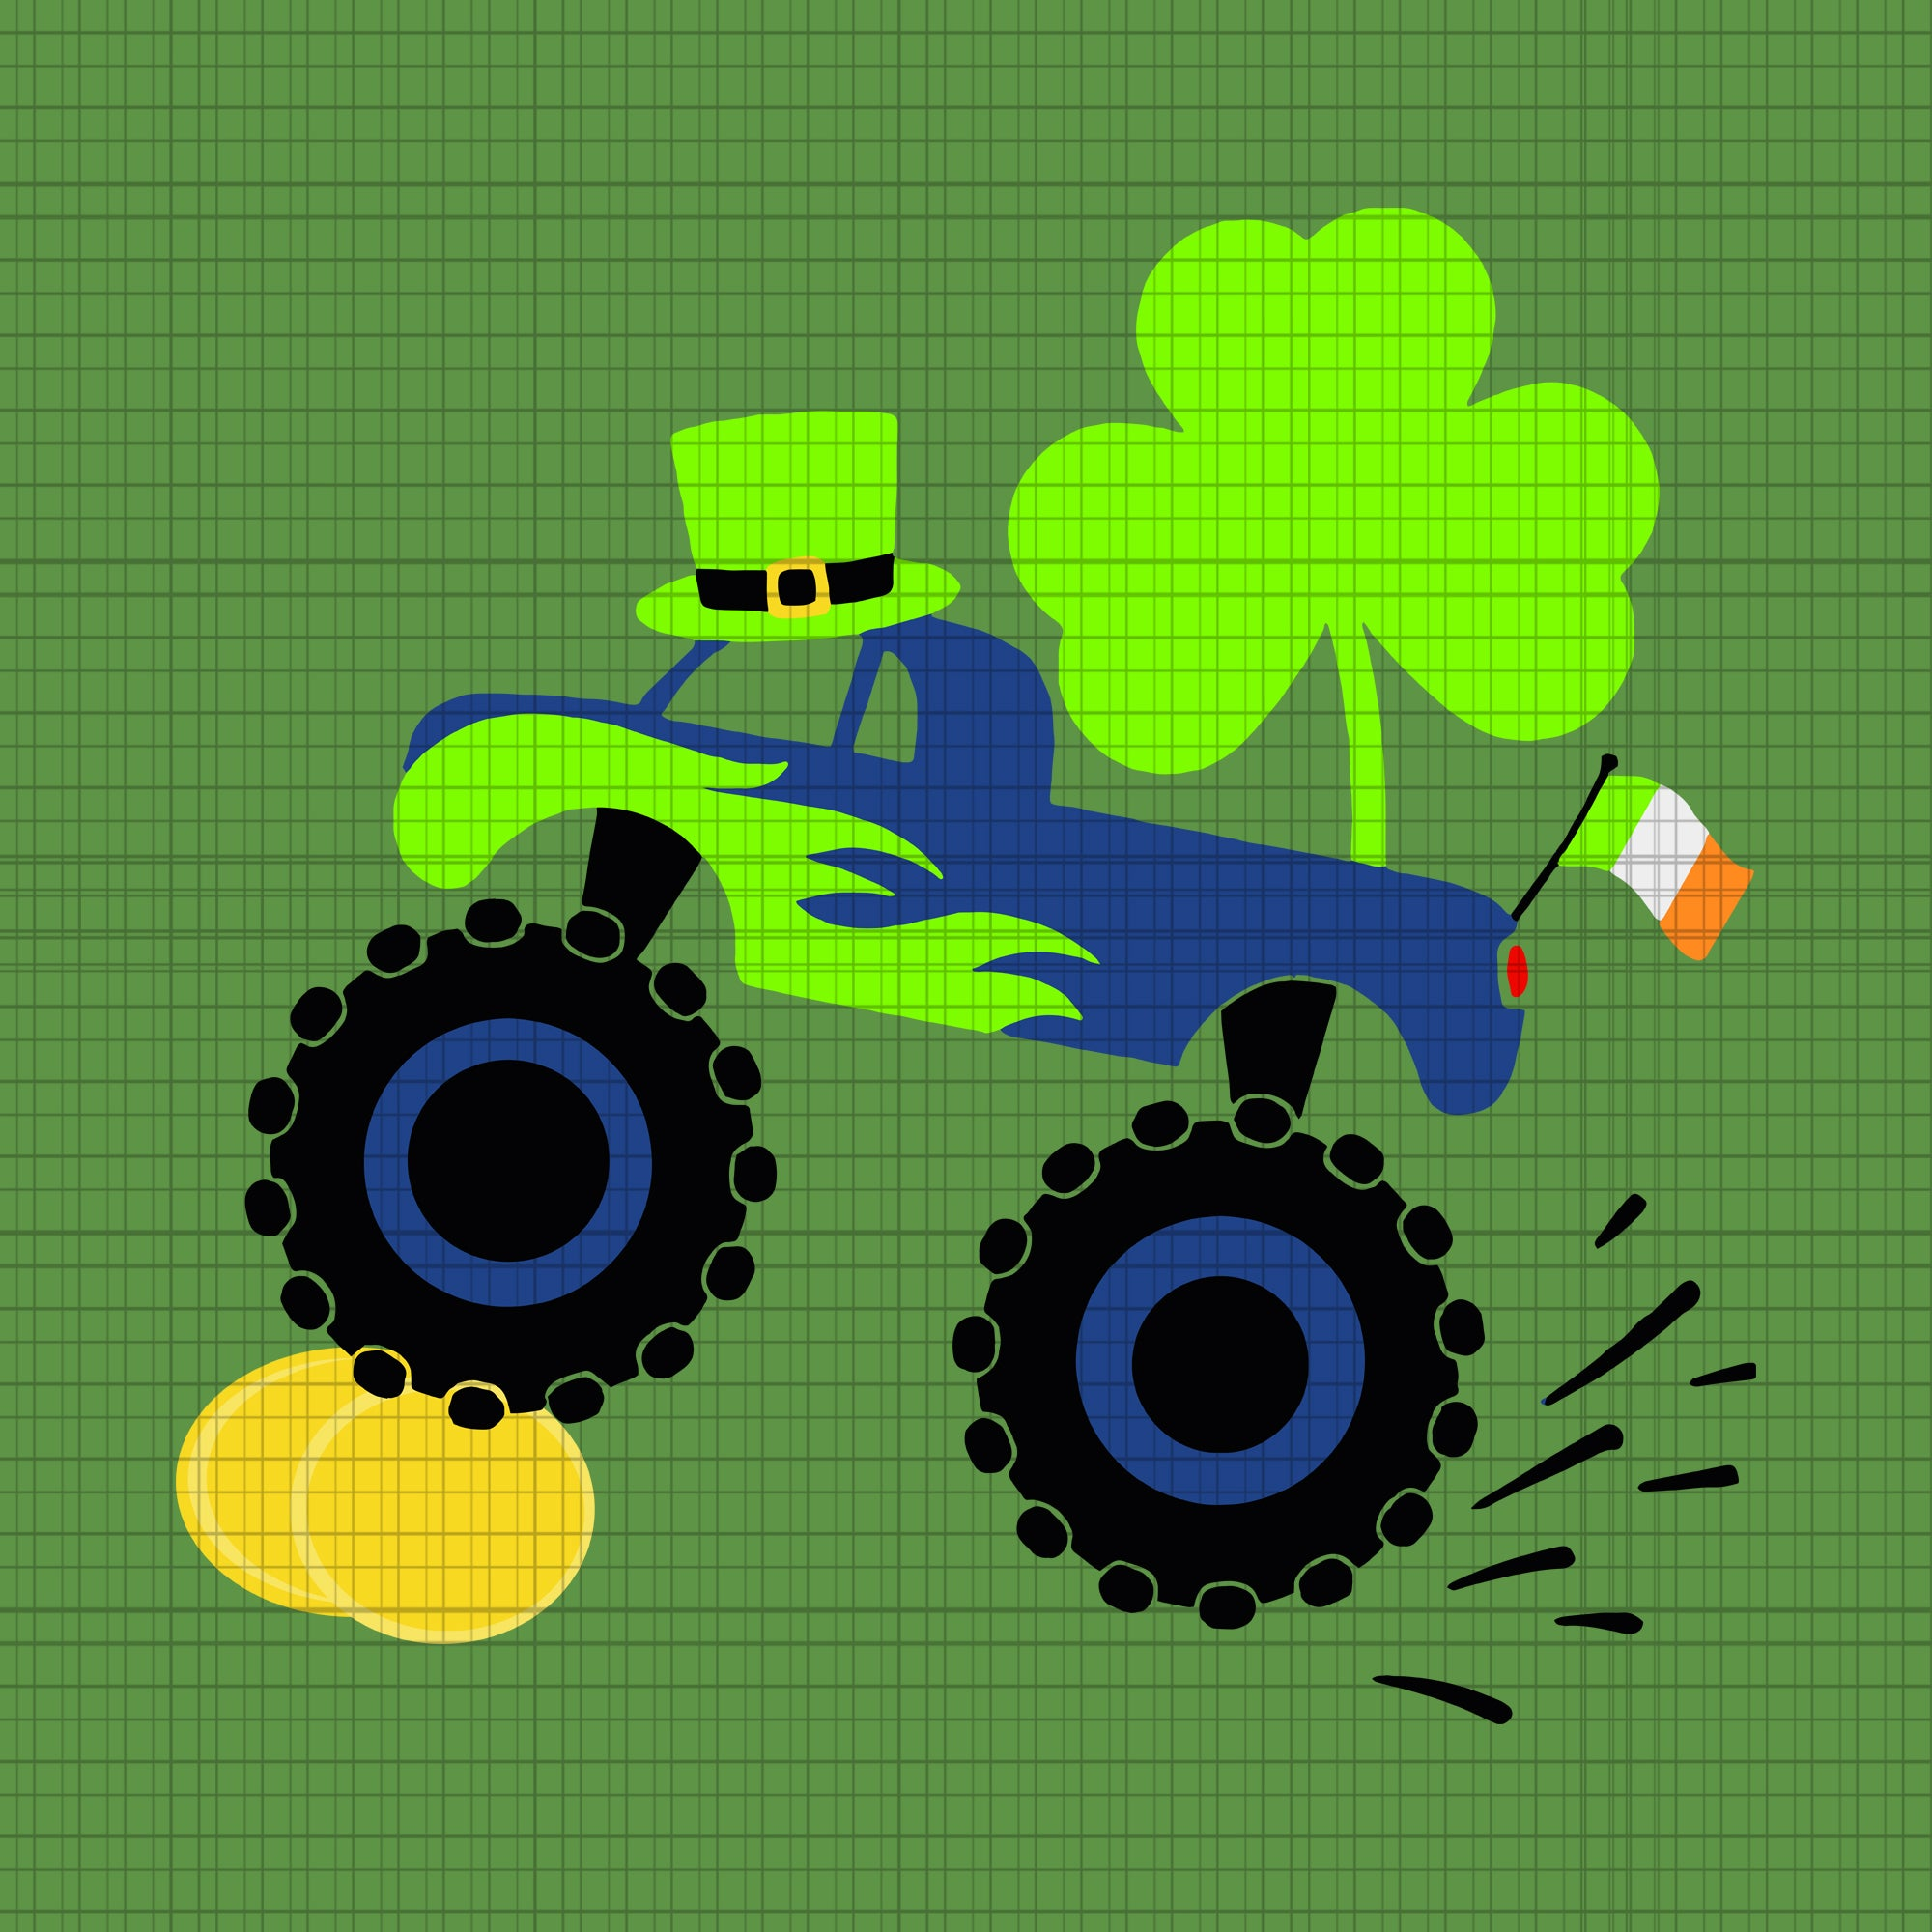 Kids saint patricks day gift for monster truck lover boy shamrock svg, truck patricks day svg, st patrick day svg, patrick day svg, truck svg